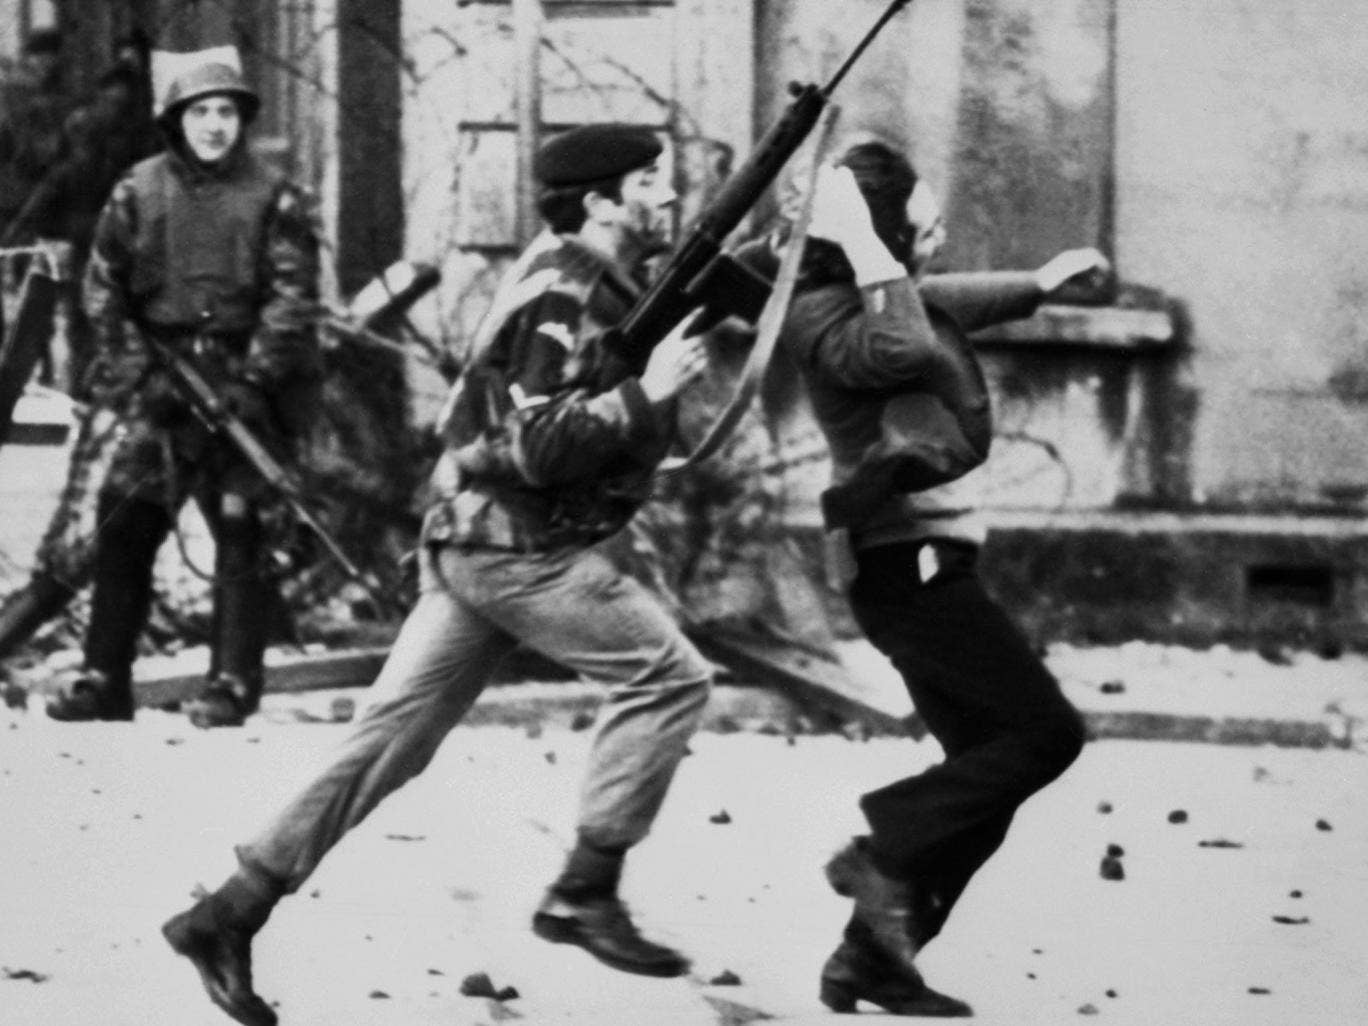 A British soldier drags a Catholic protester during the 'Bloody Sunday' killings